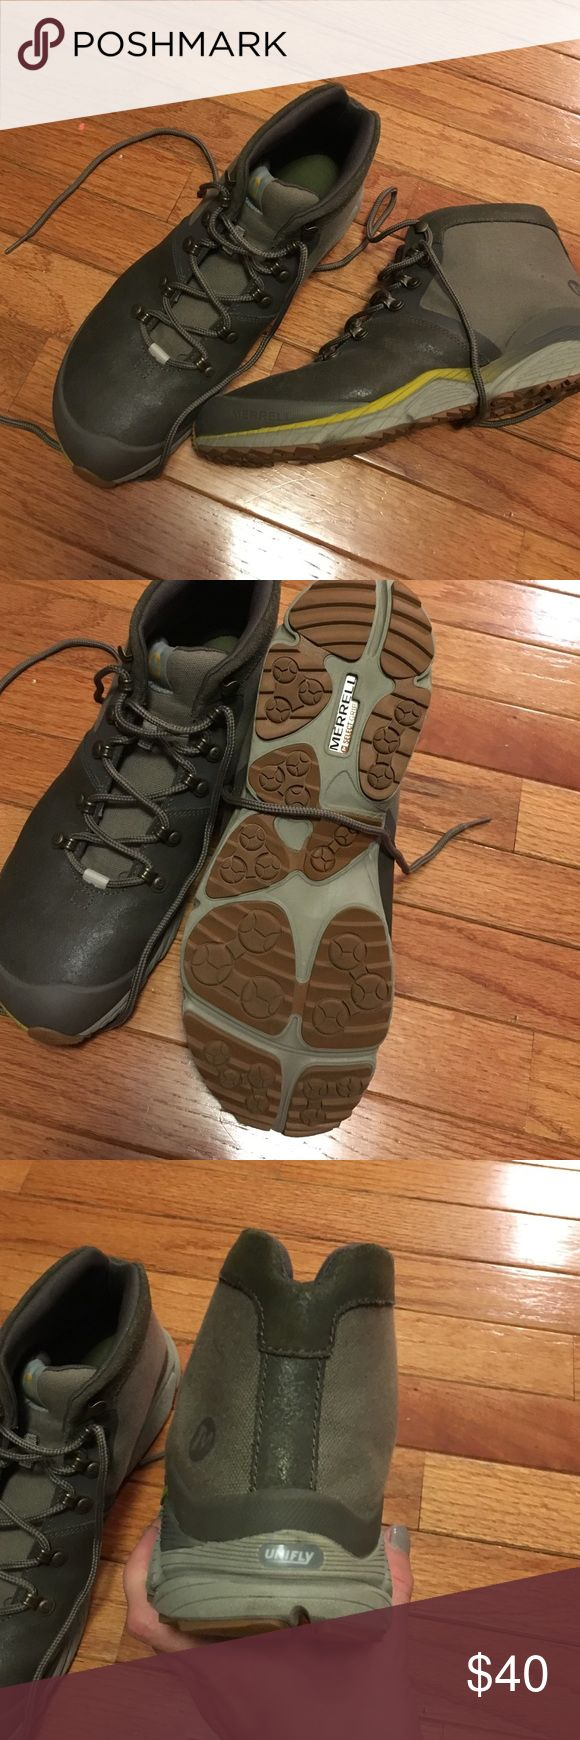 Merrell Boulder Hiking Boot 10.5 Tan Men's Merrell Boulder Hiking Boot 10.5 Tan Men's worn 2 times.  No box. Merrell Shoes Boots